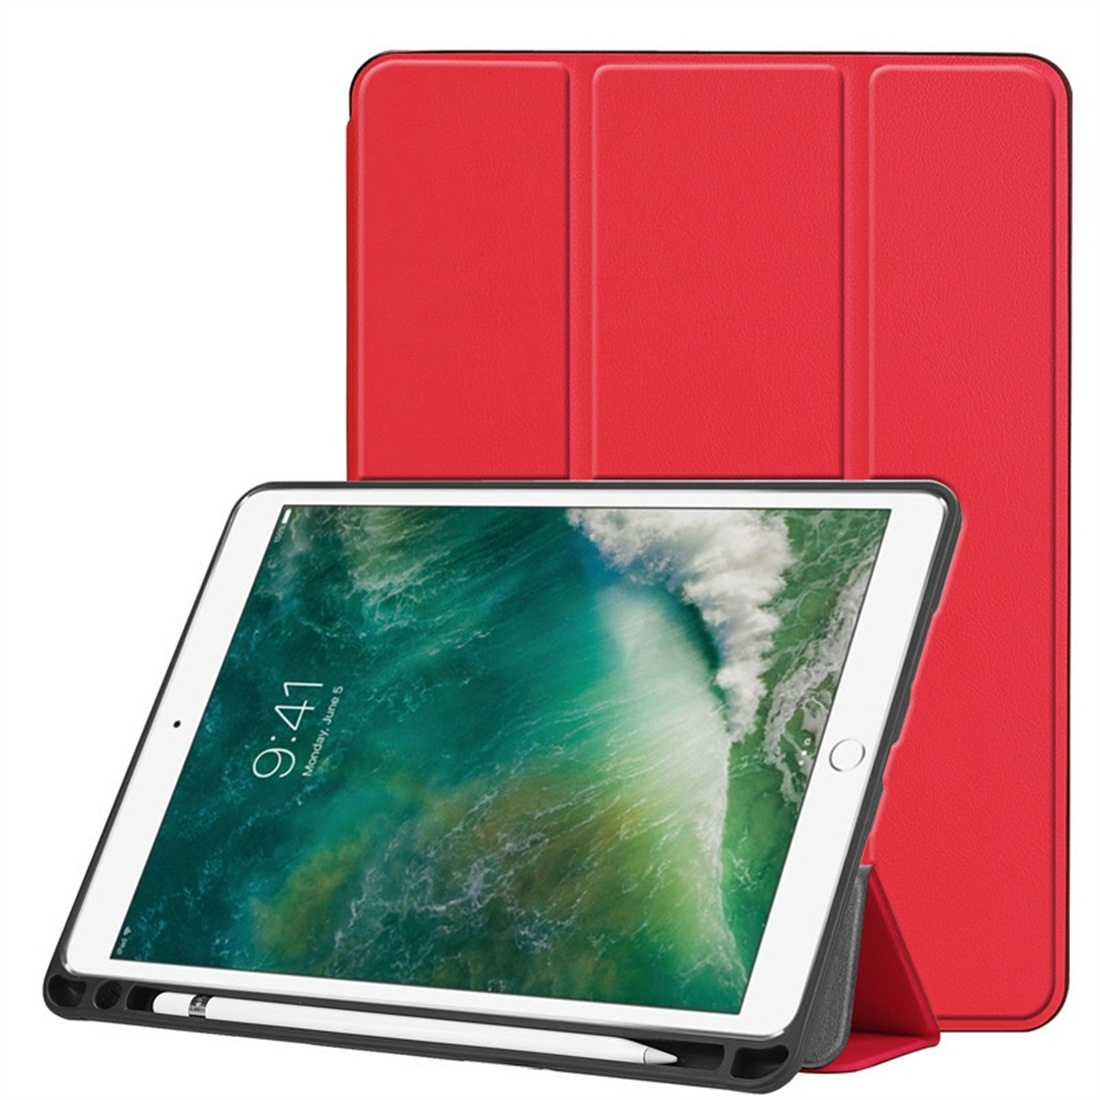 Custer Texture Leather iPad Air 3 Case (10.5 Inch)/ iPad Air (2019), with Pen Holder (Red)